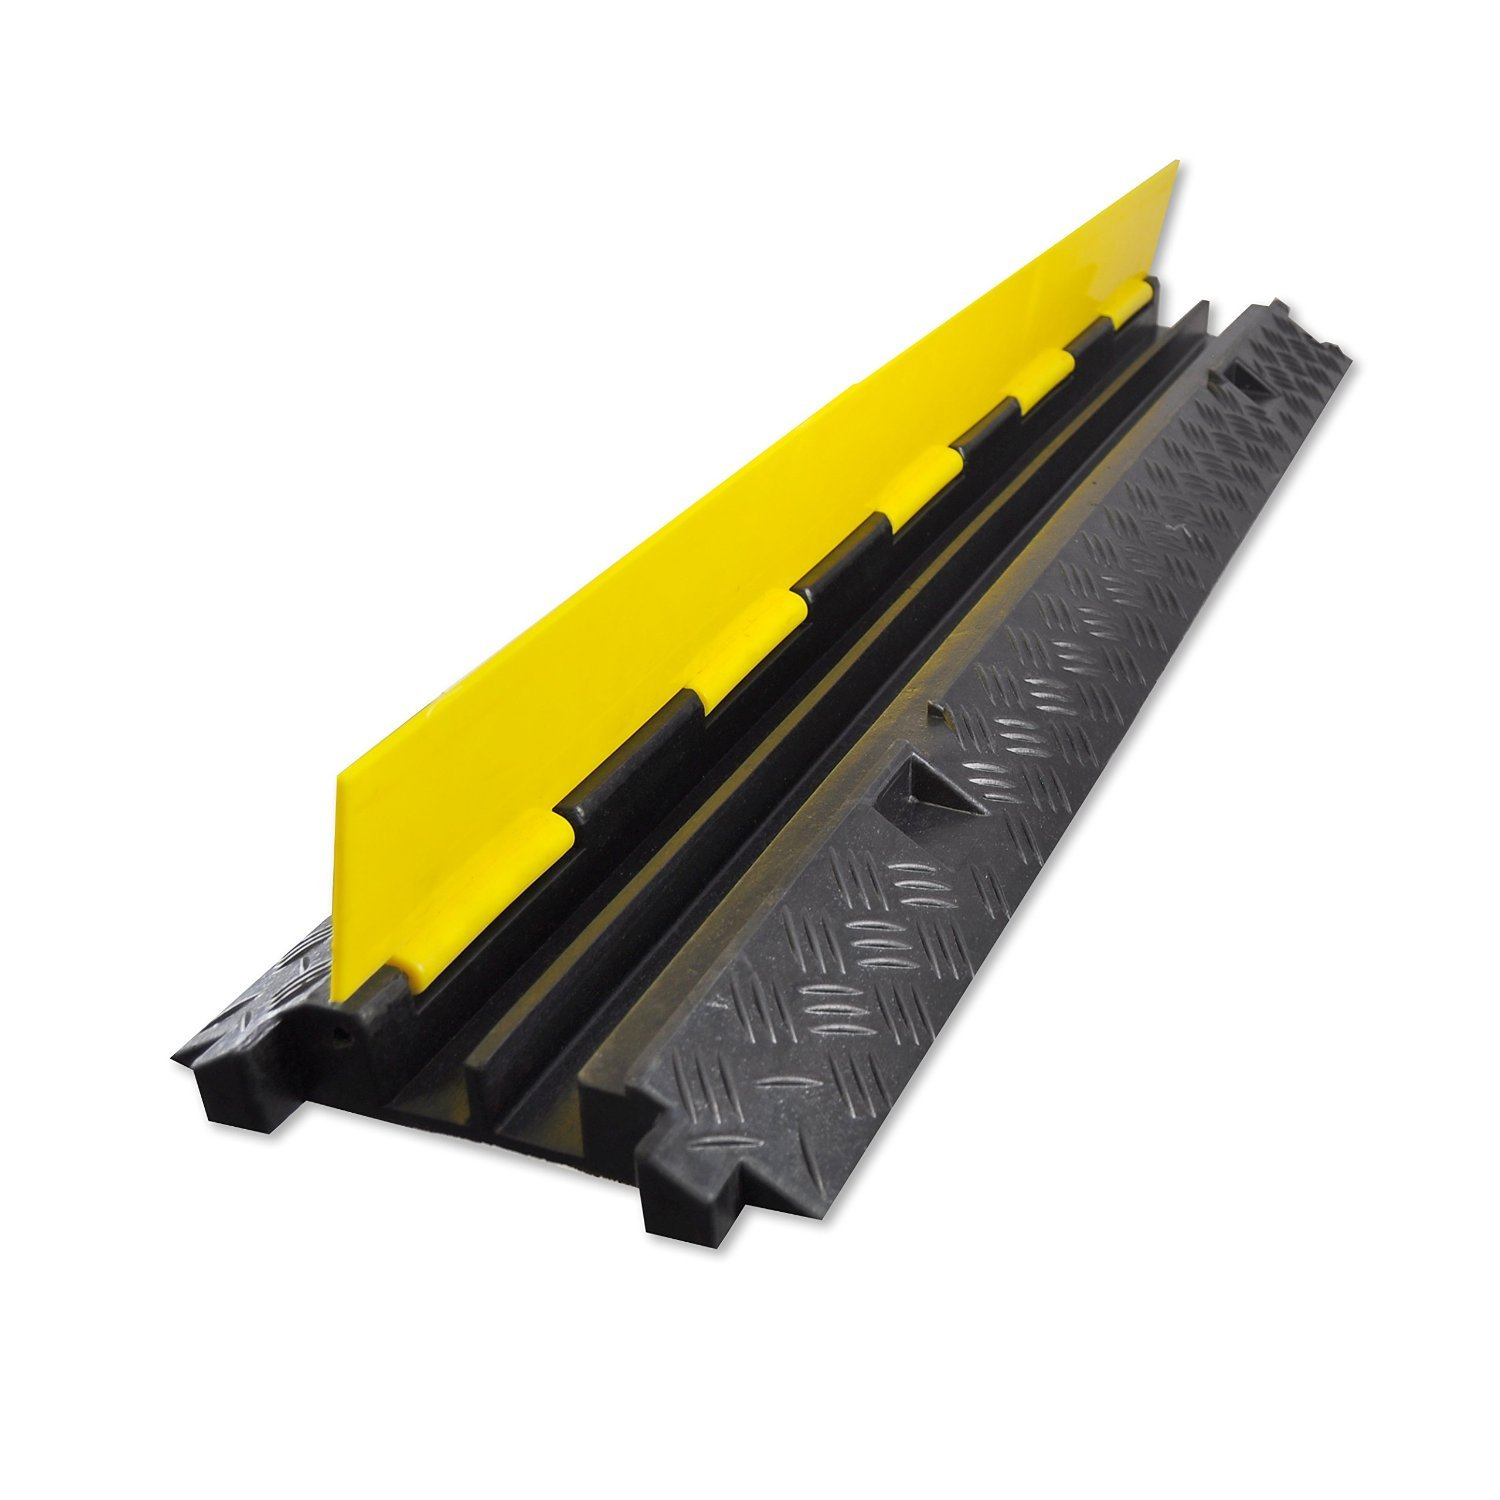 EZ Runner 2 Channel Cable Protector - Length: 39'' - Black Base/Yellow Lid *3 Pack* by EZ Hidewire